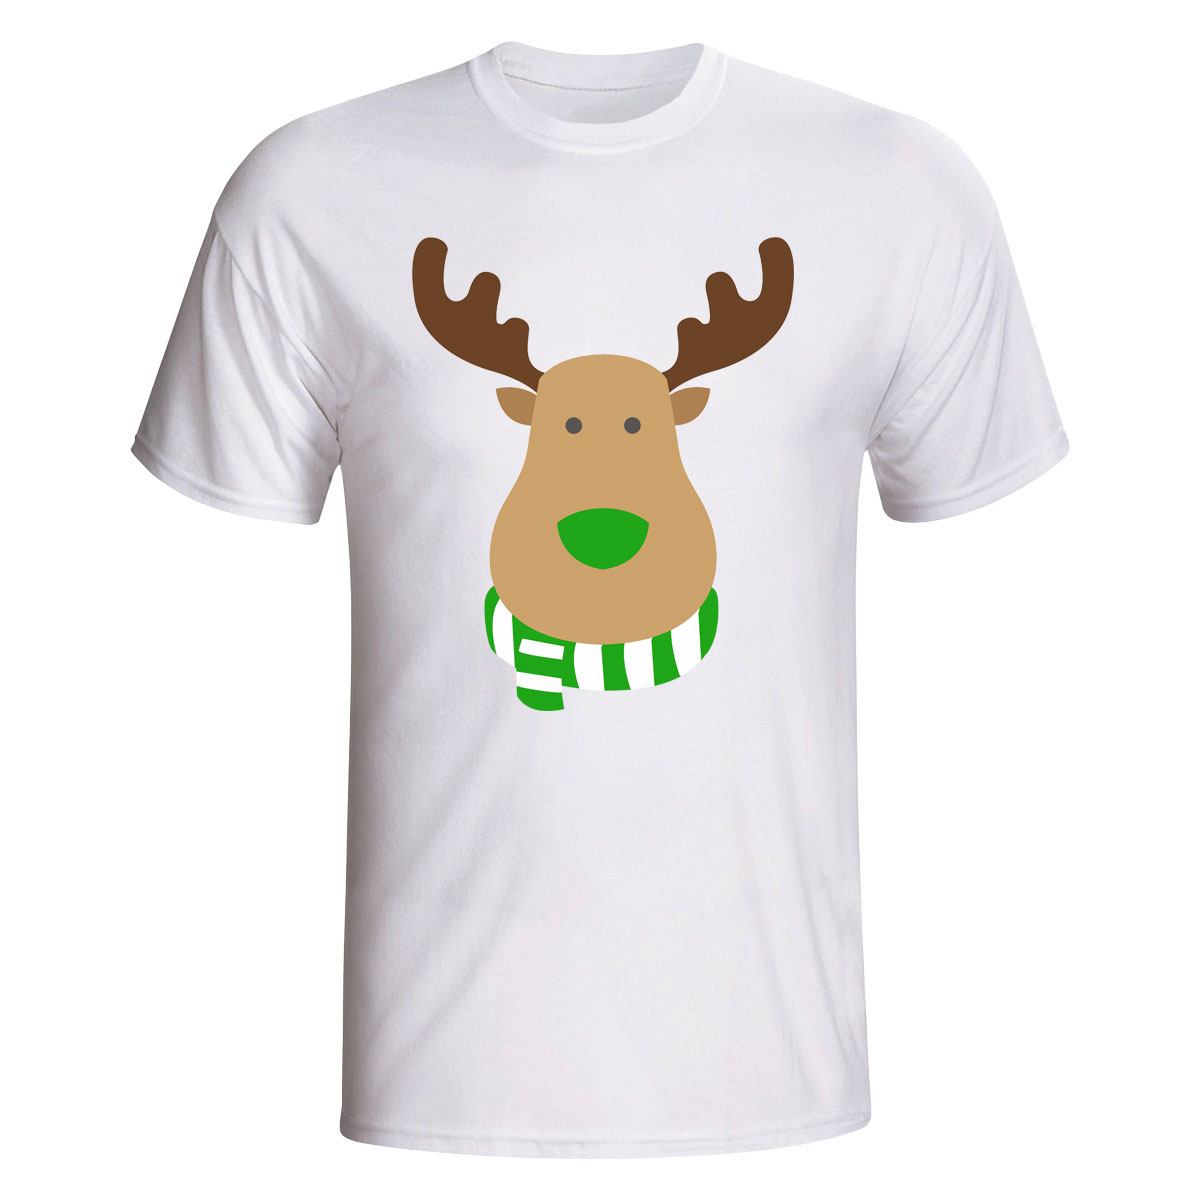 Portland Timbers Rudolph Supporters T-shirt (white)